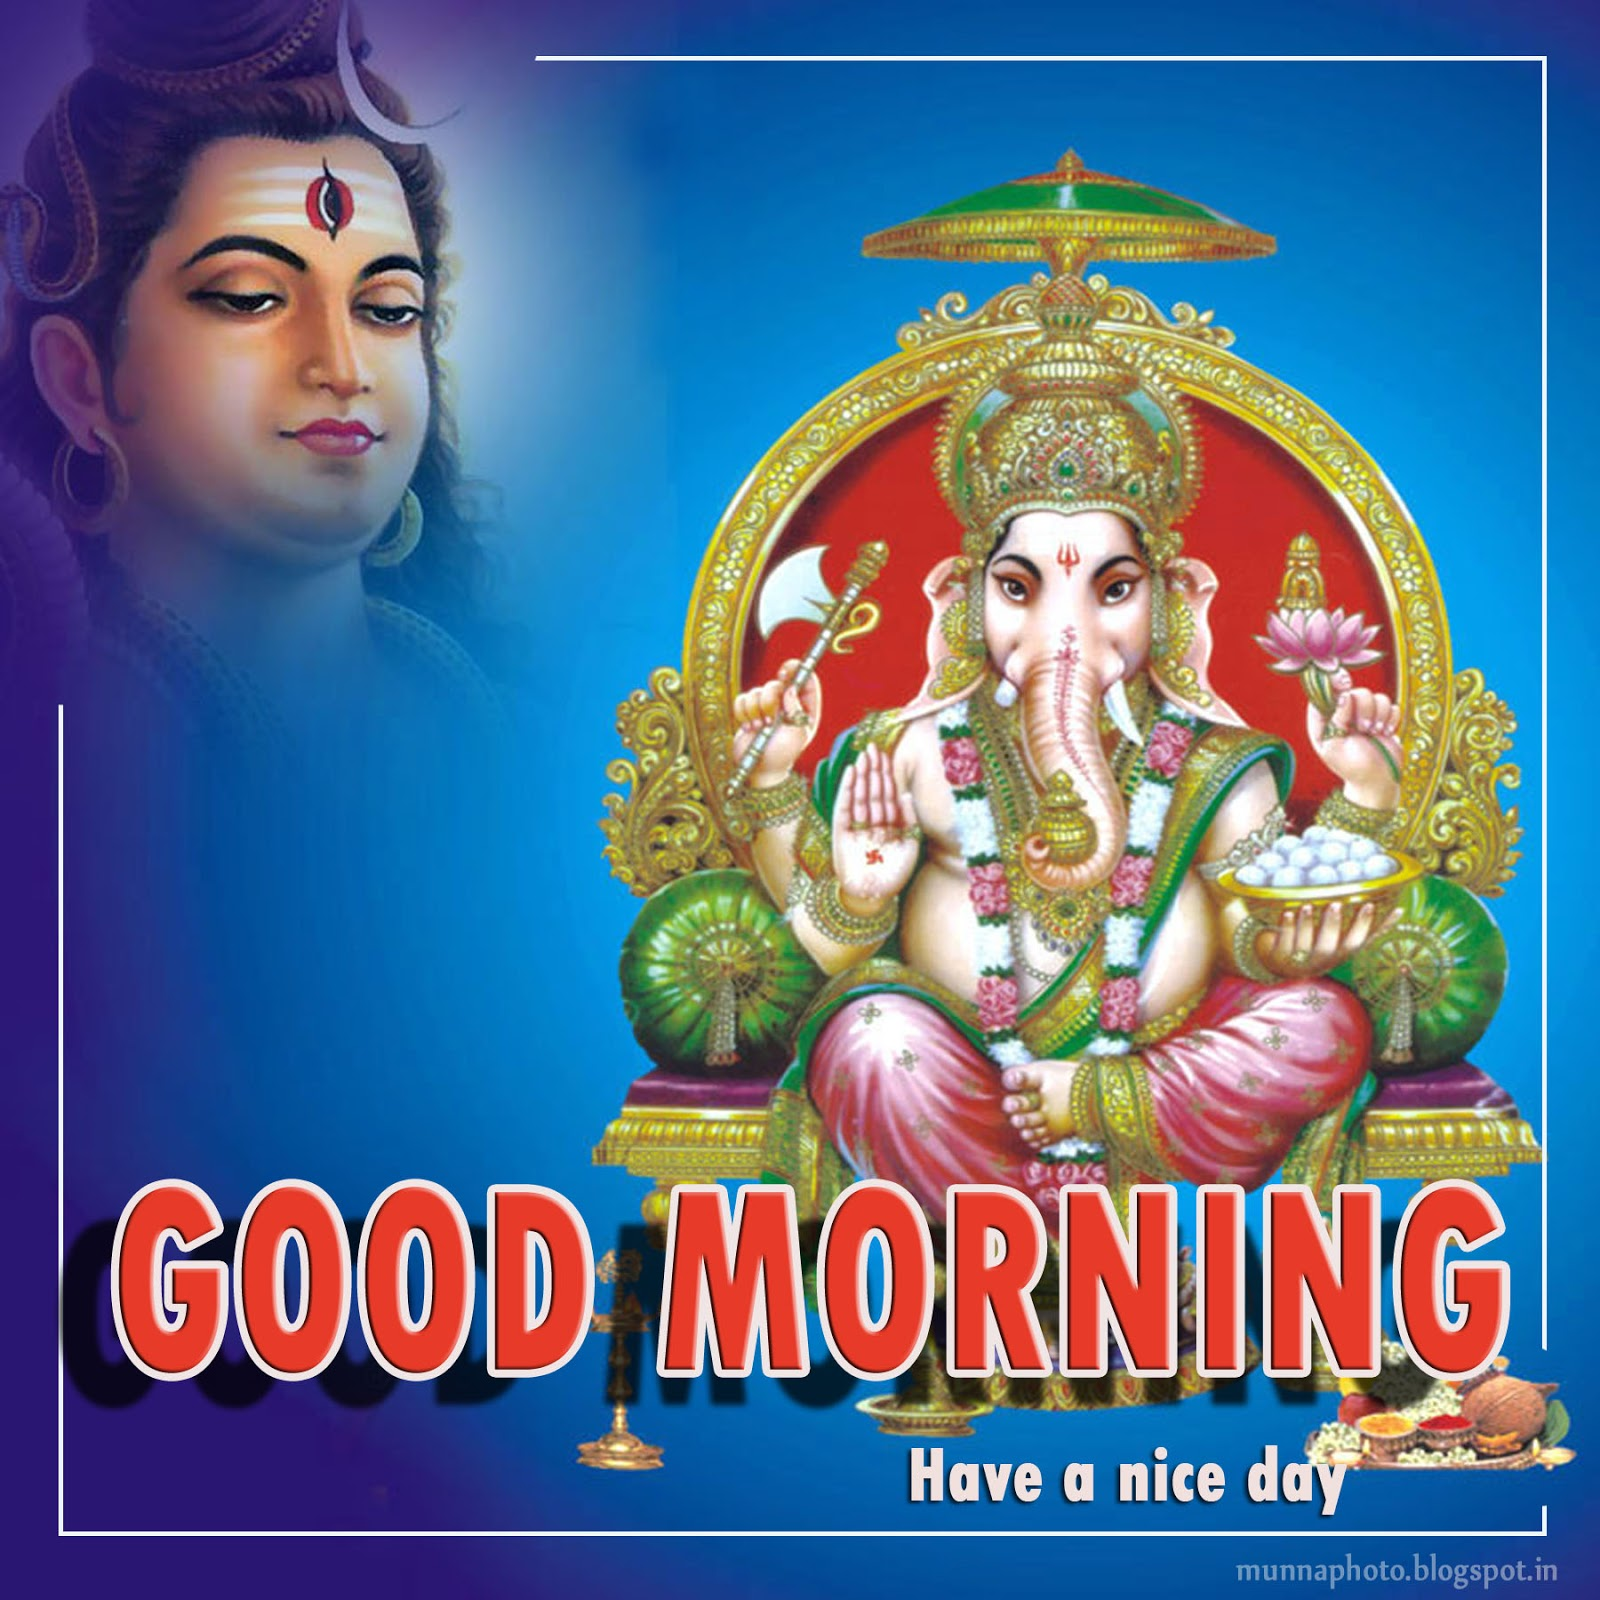 Good Morning Hindu God Munna Photo